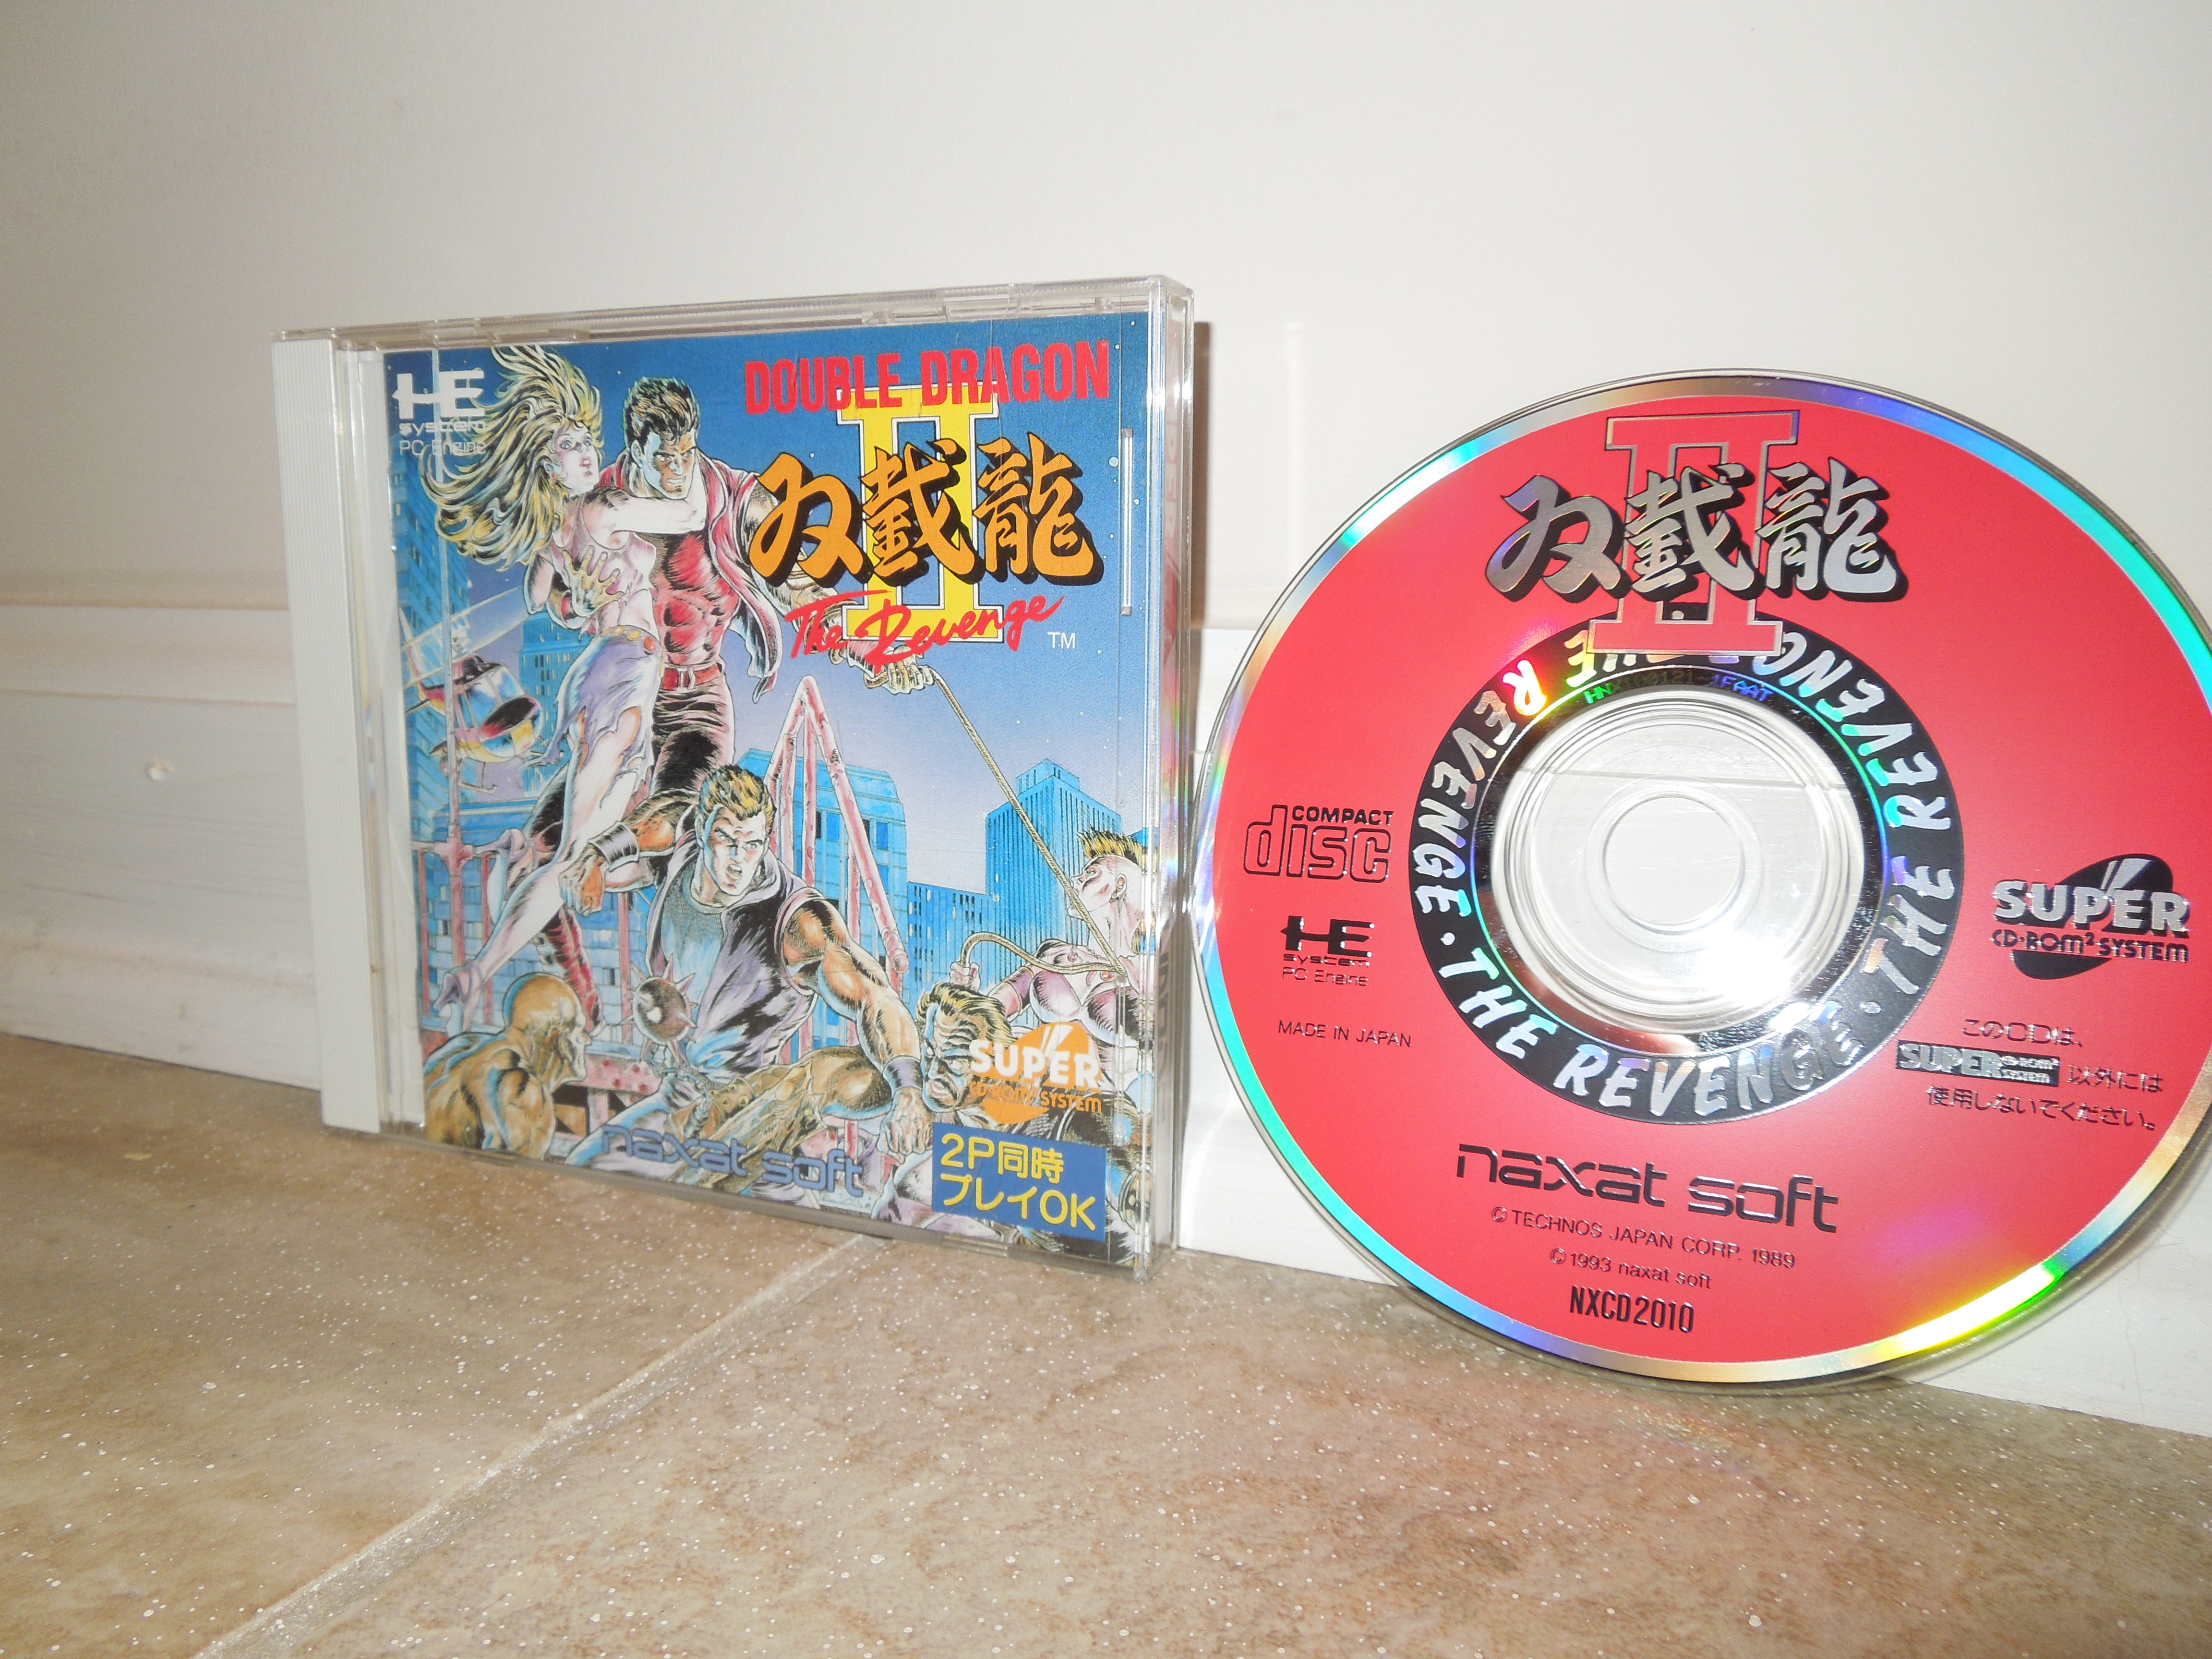 PC Engine Super CD-Rom – Double Dragon II: The Revenge | Obscure